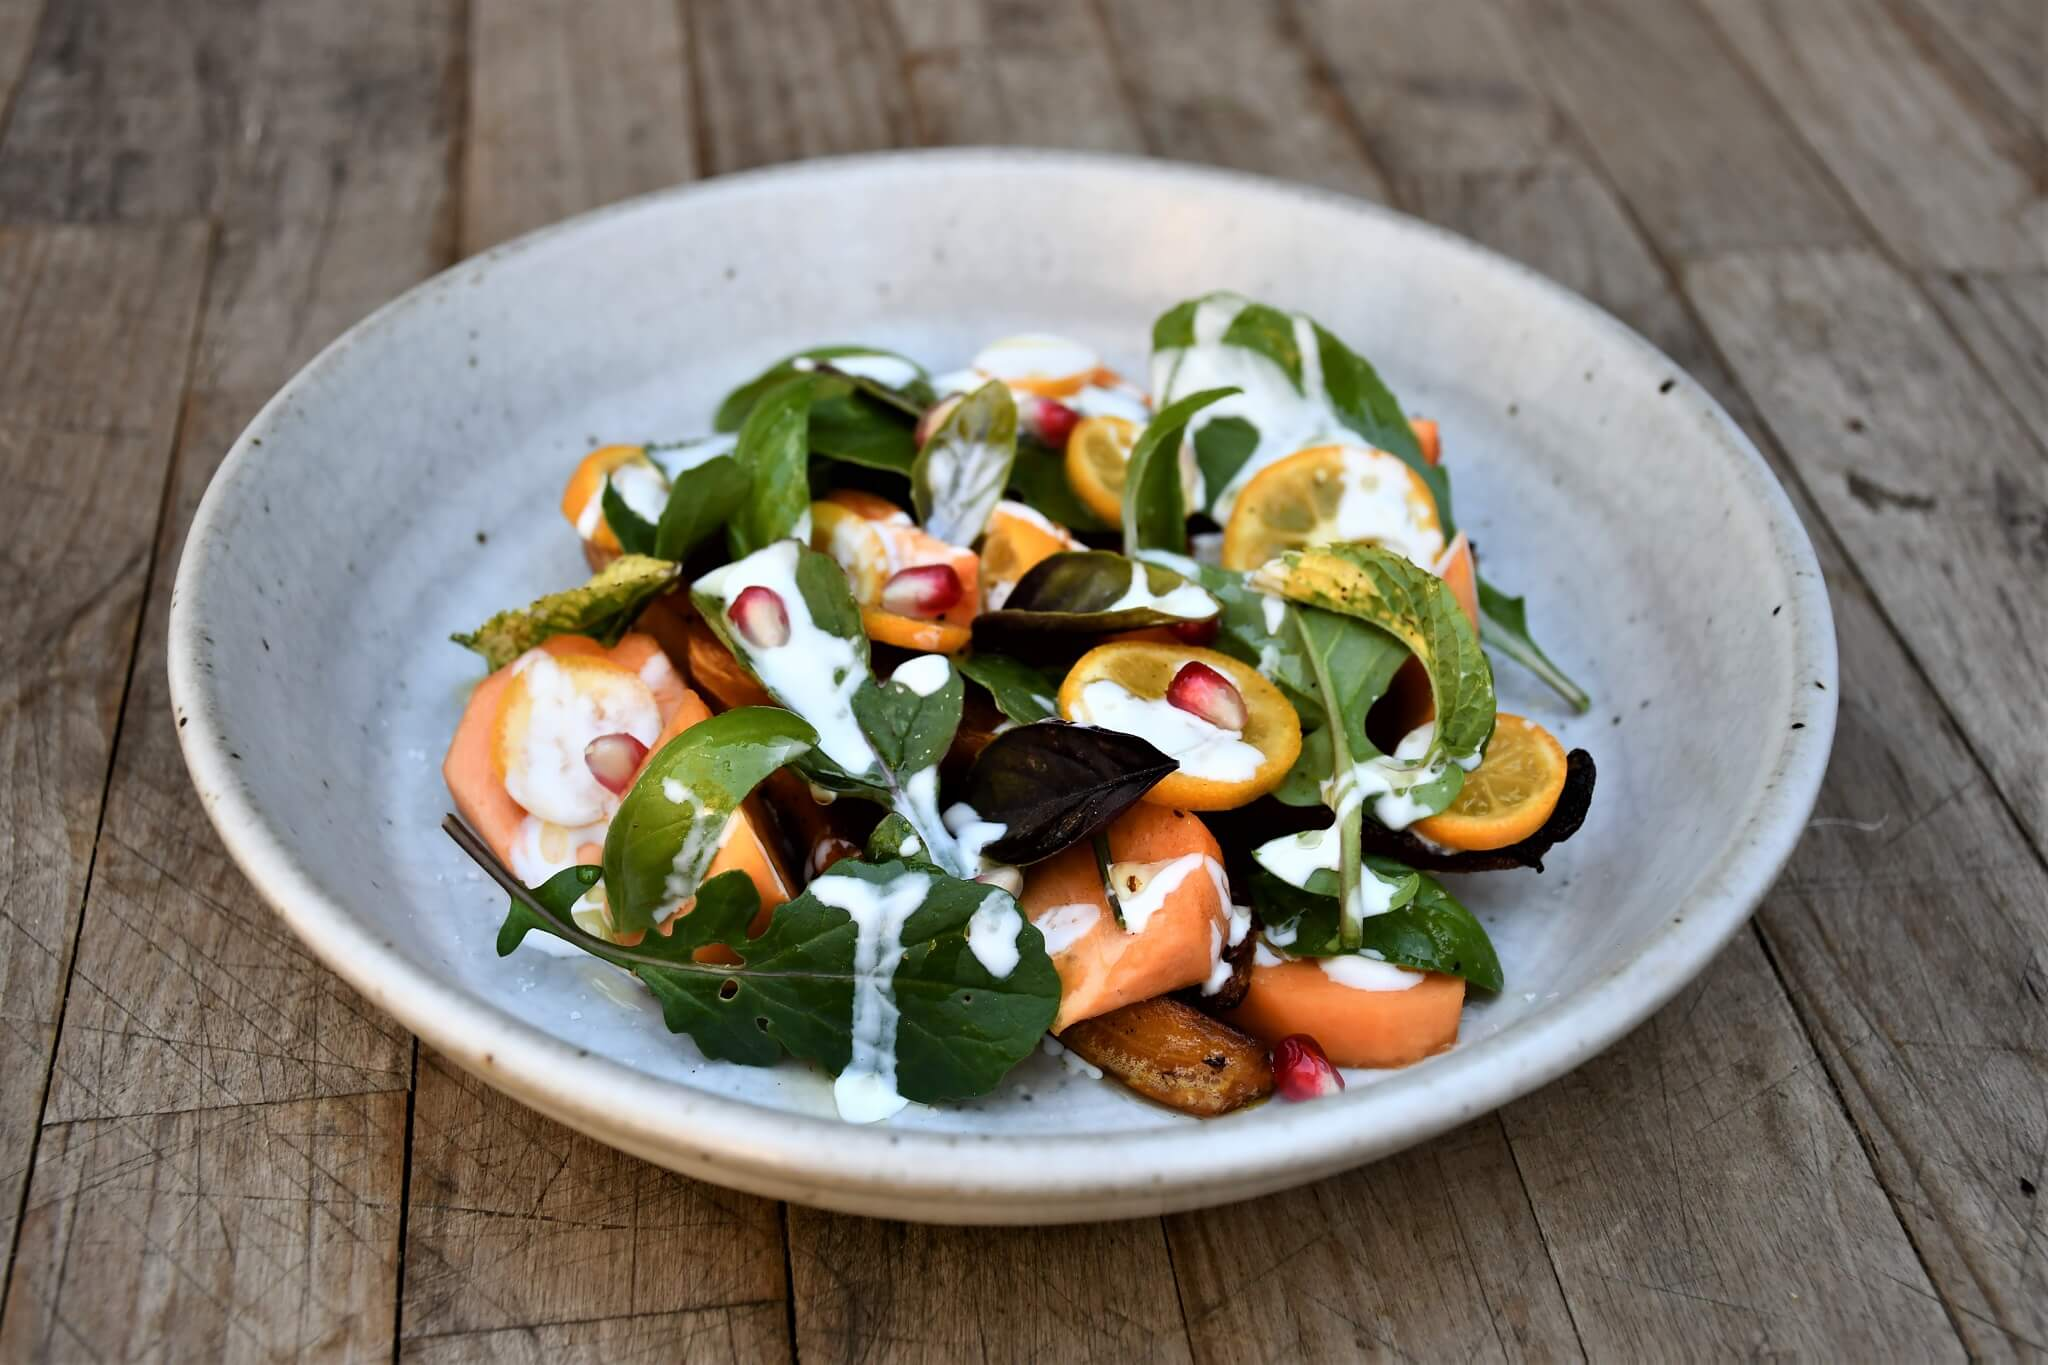 Fall Salad of Roasted Honeynut Squash, Fuyu Persimmons, and Kumquats